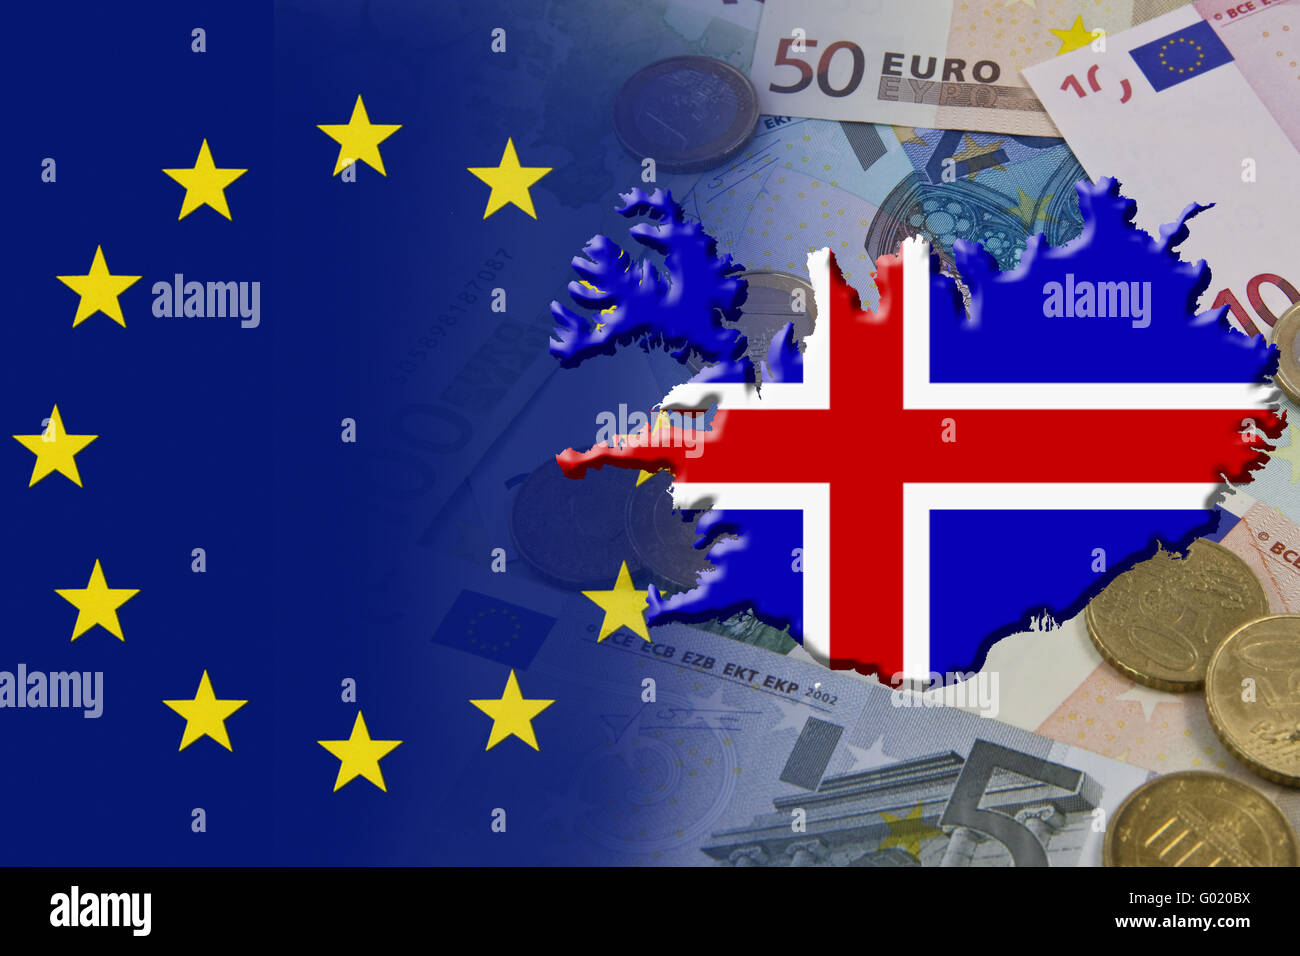 Financial and economic crisis in the euro area in Europe of the country Iceland - Stock Image